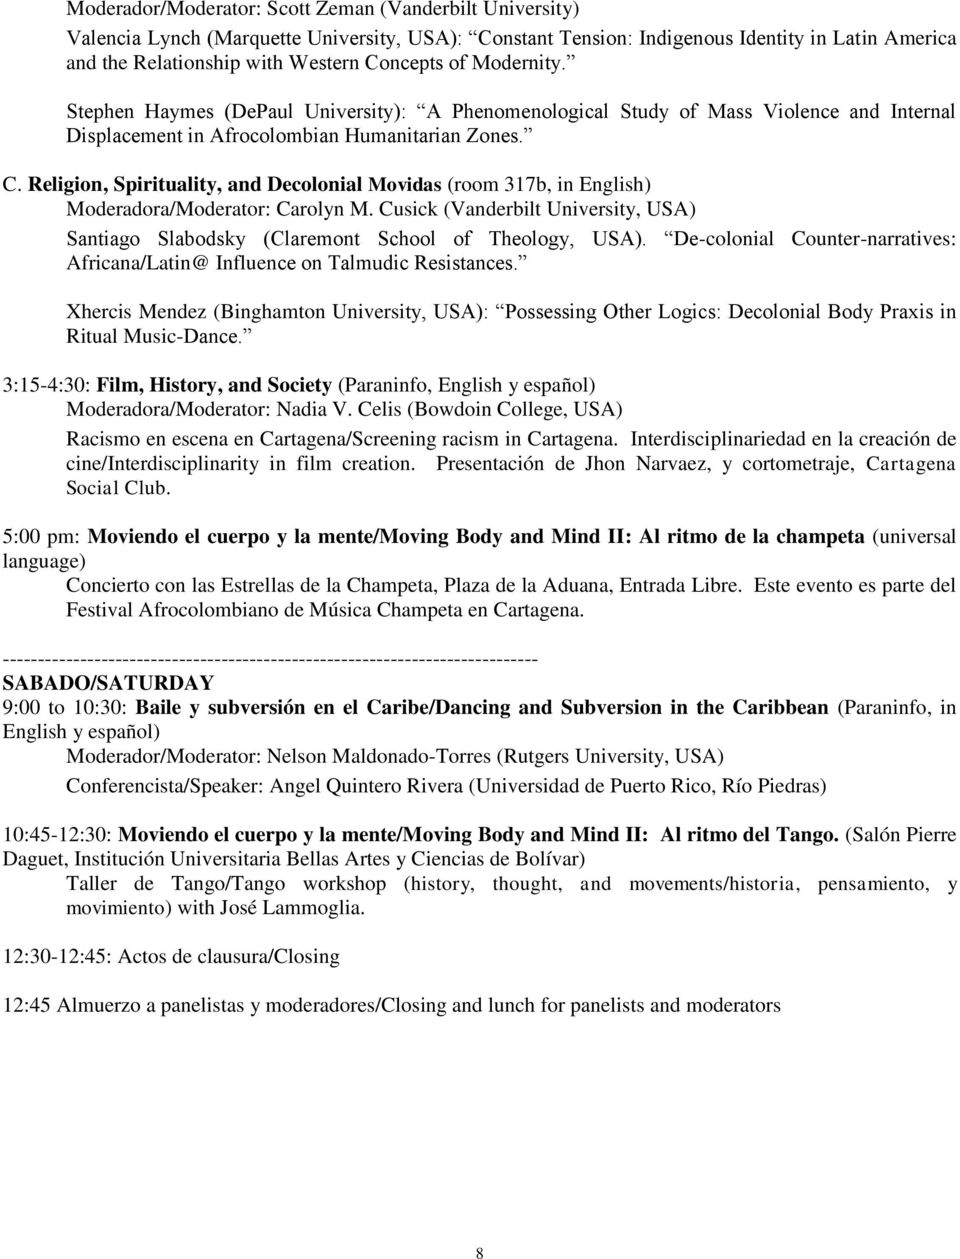 Religion, Spirituality, and Decolonial Movidas (room 317b, in English) Moderadora/Moderator: Carolyn M. Cusick (Vanderbilt University, USA) Santiago Slabodsky (Claremont School of Theology, USA).